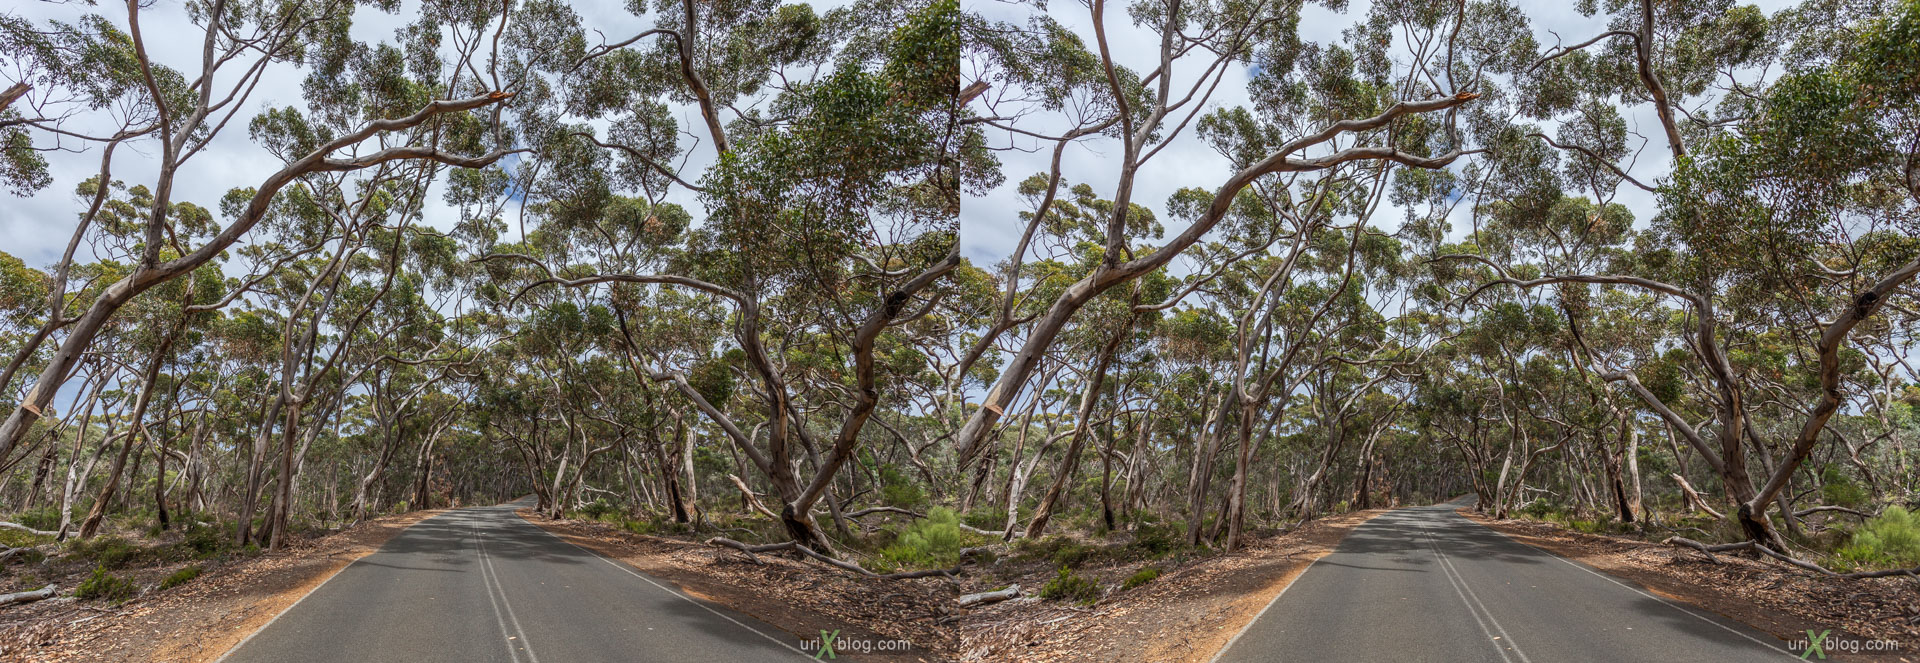 road, forest, Kelly Hill Conservation Park, Kangaroo Island, Australia, 3D, stereo pair, cross-eyed, crossview, cross view stereo pair, stereoscopic, 2011